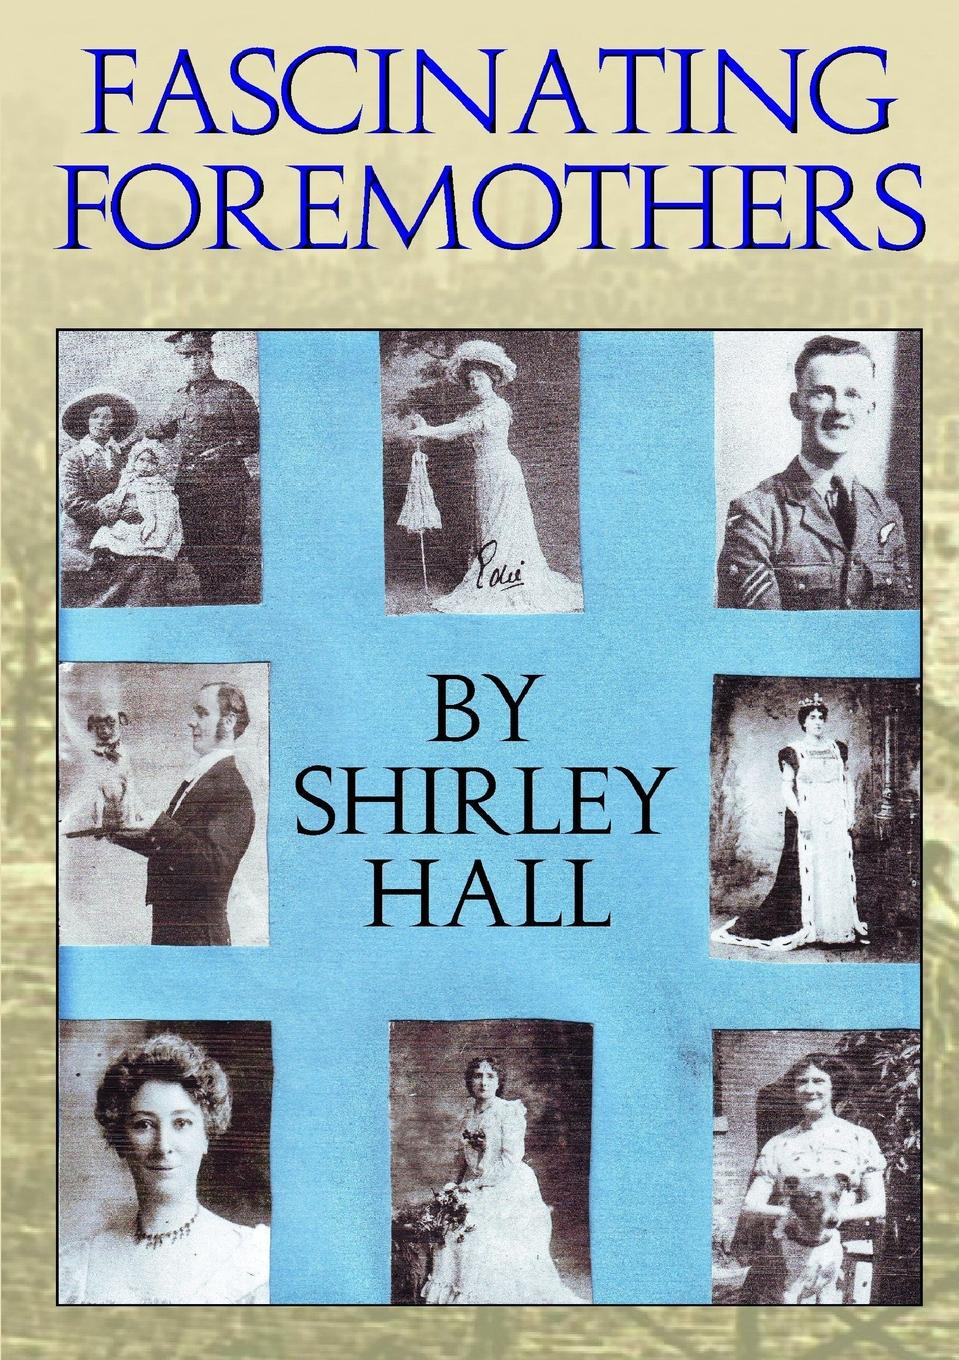 Shirley Hall Fascinating Foremothers